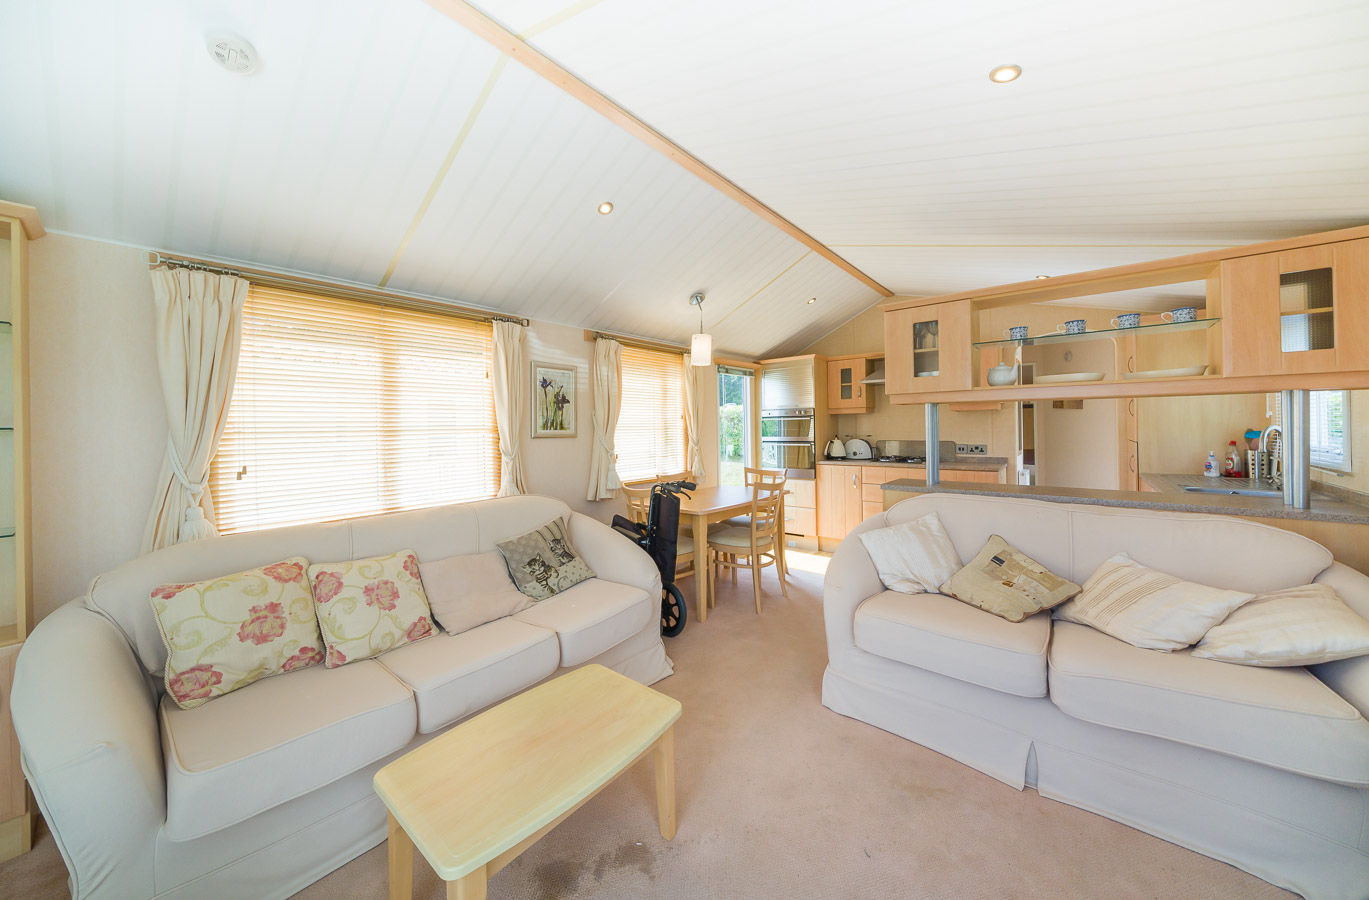 Monkton-Wyld-Static-Mobile-Holiday-Home-Sale-Plot-26-Charmouth-Lyme-Regis-West-Dorset-6